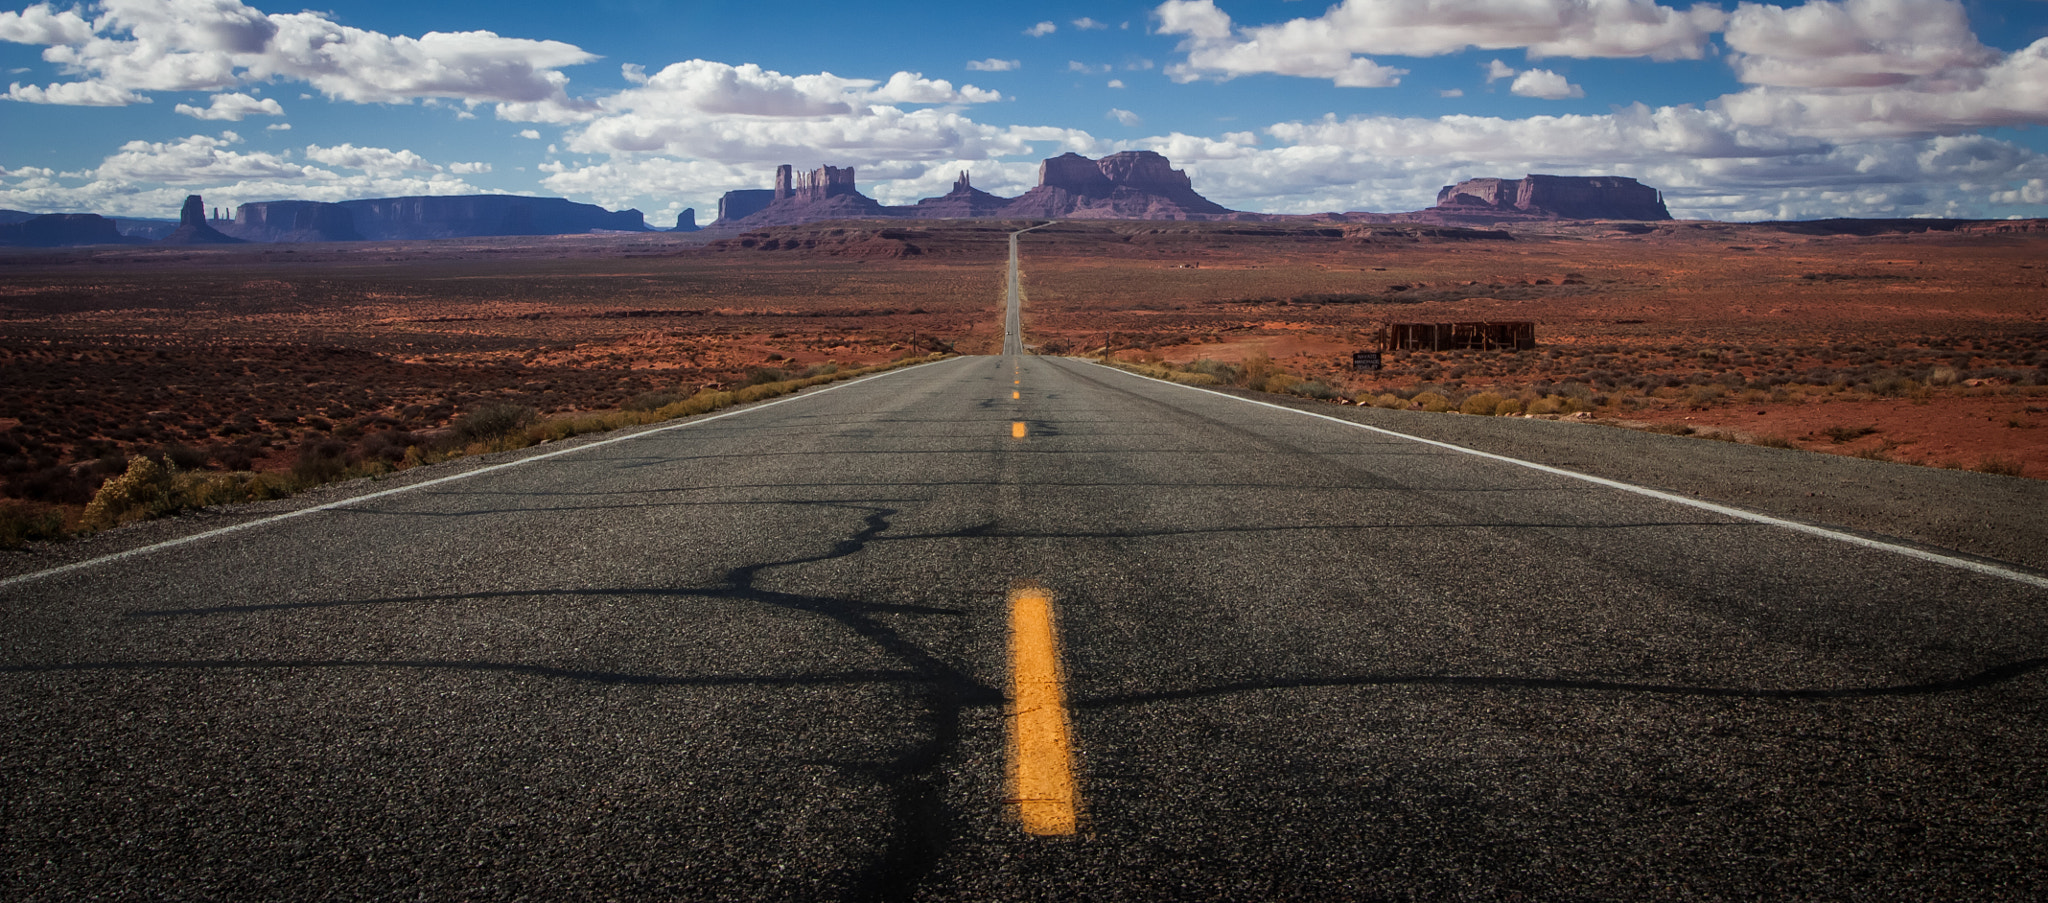 Photograph 163 South to Monument Valley by Melinda Ford on 500px